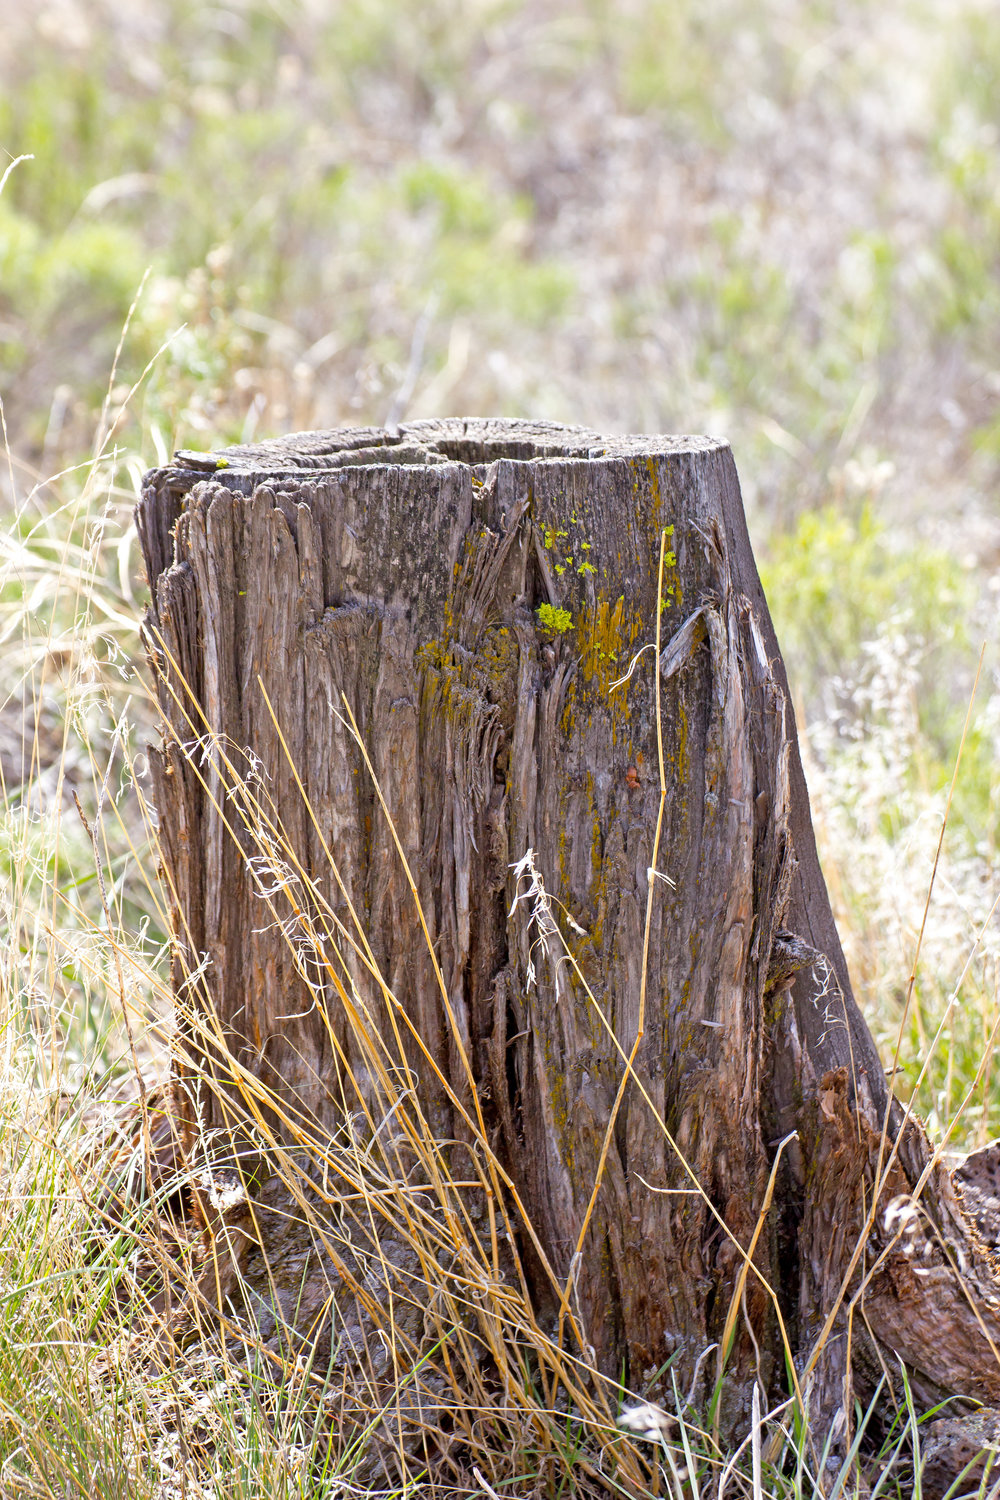 old-tree-stump_M1u2IDKu.jpg